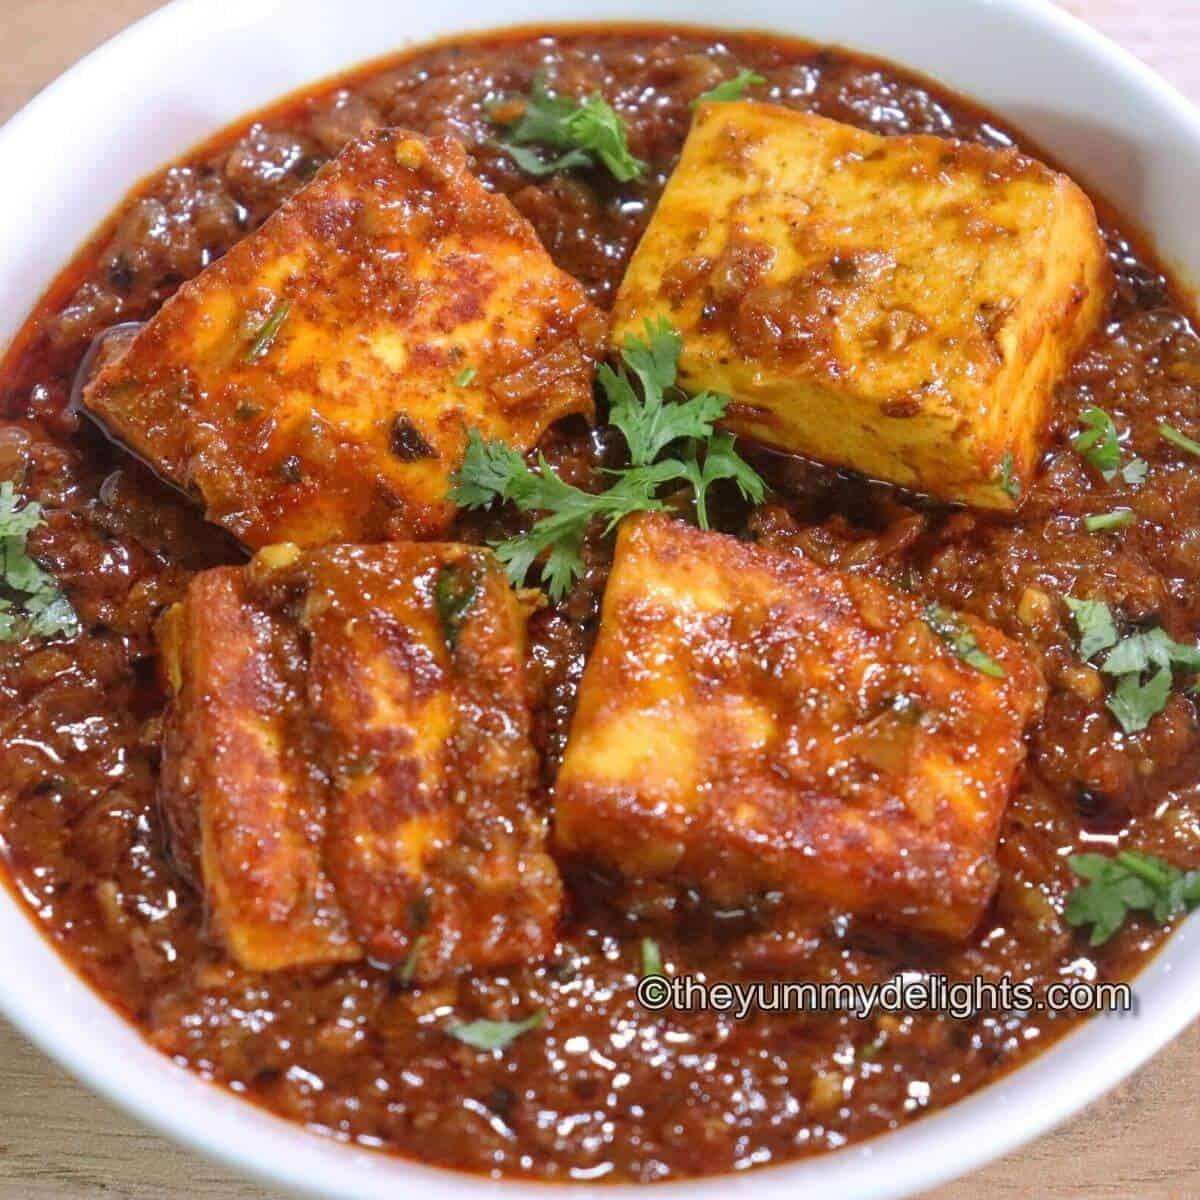 dhaba style paneer masala is served in a pan